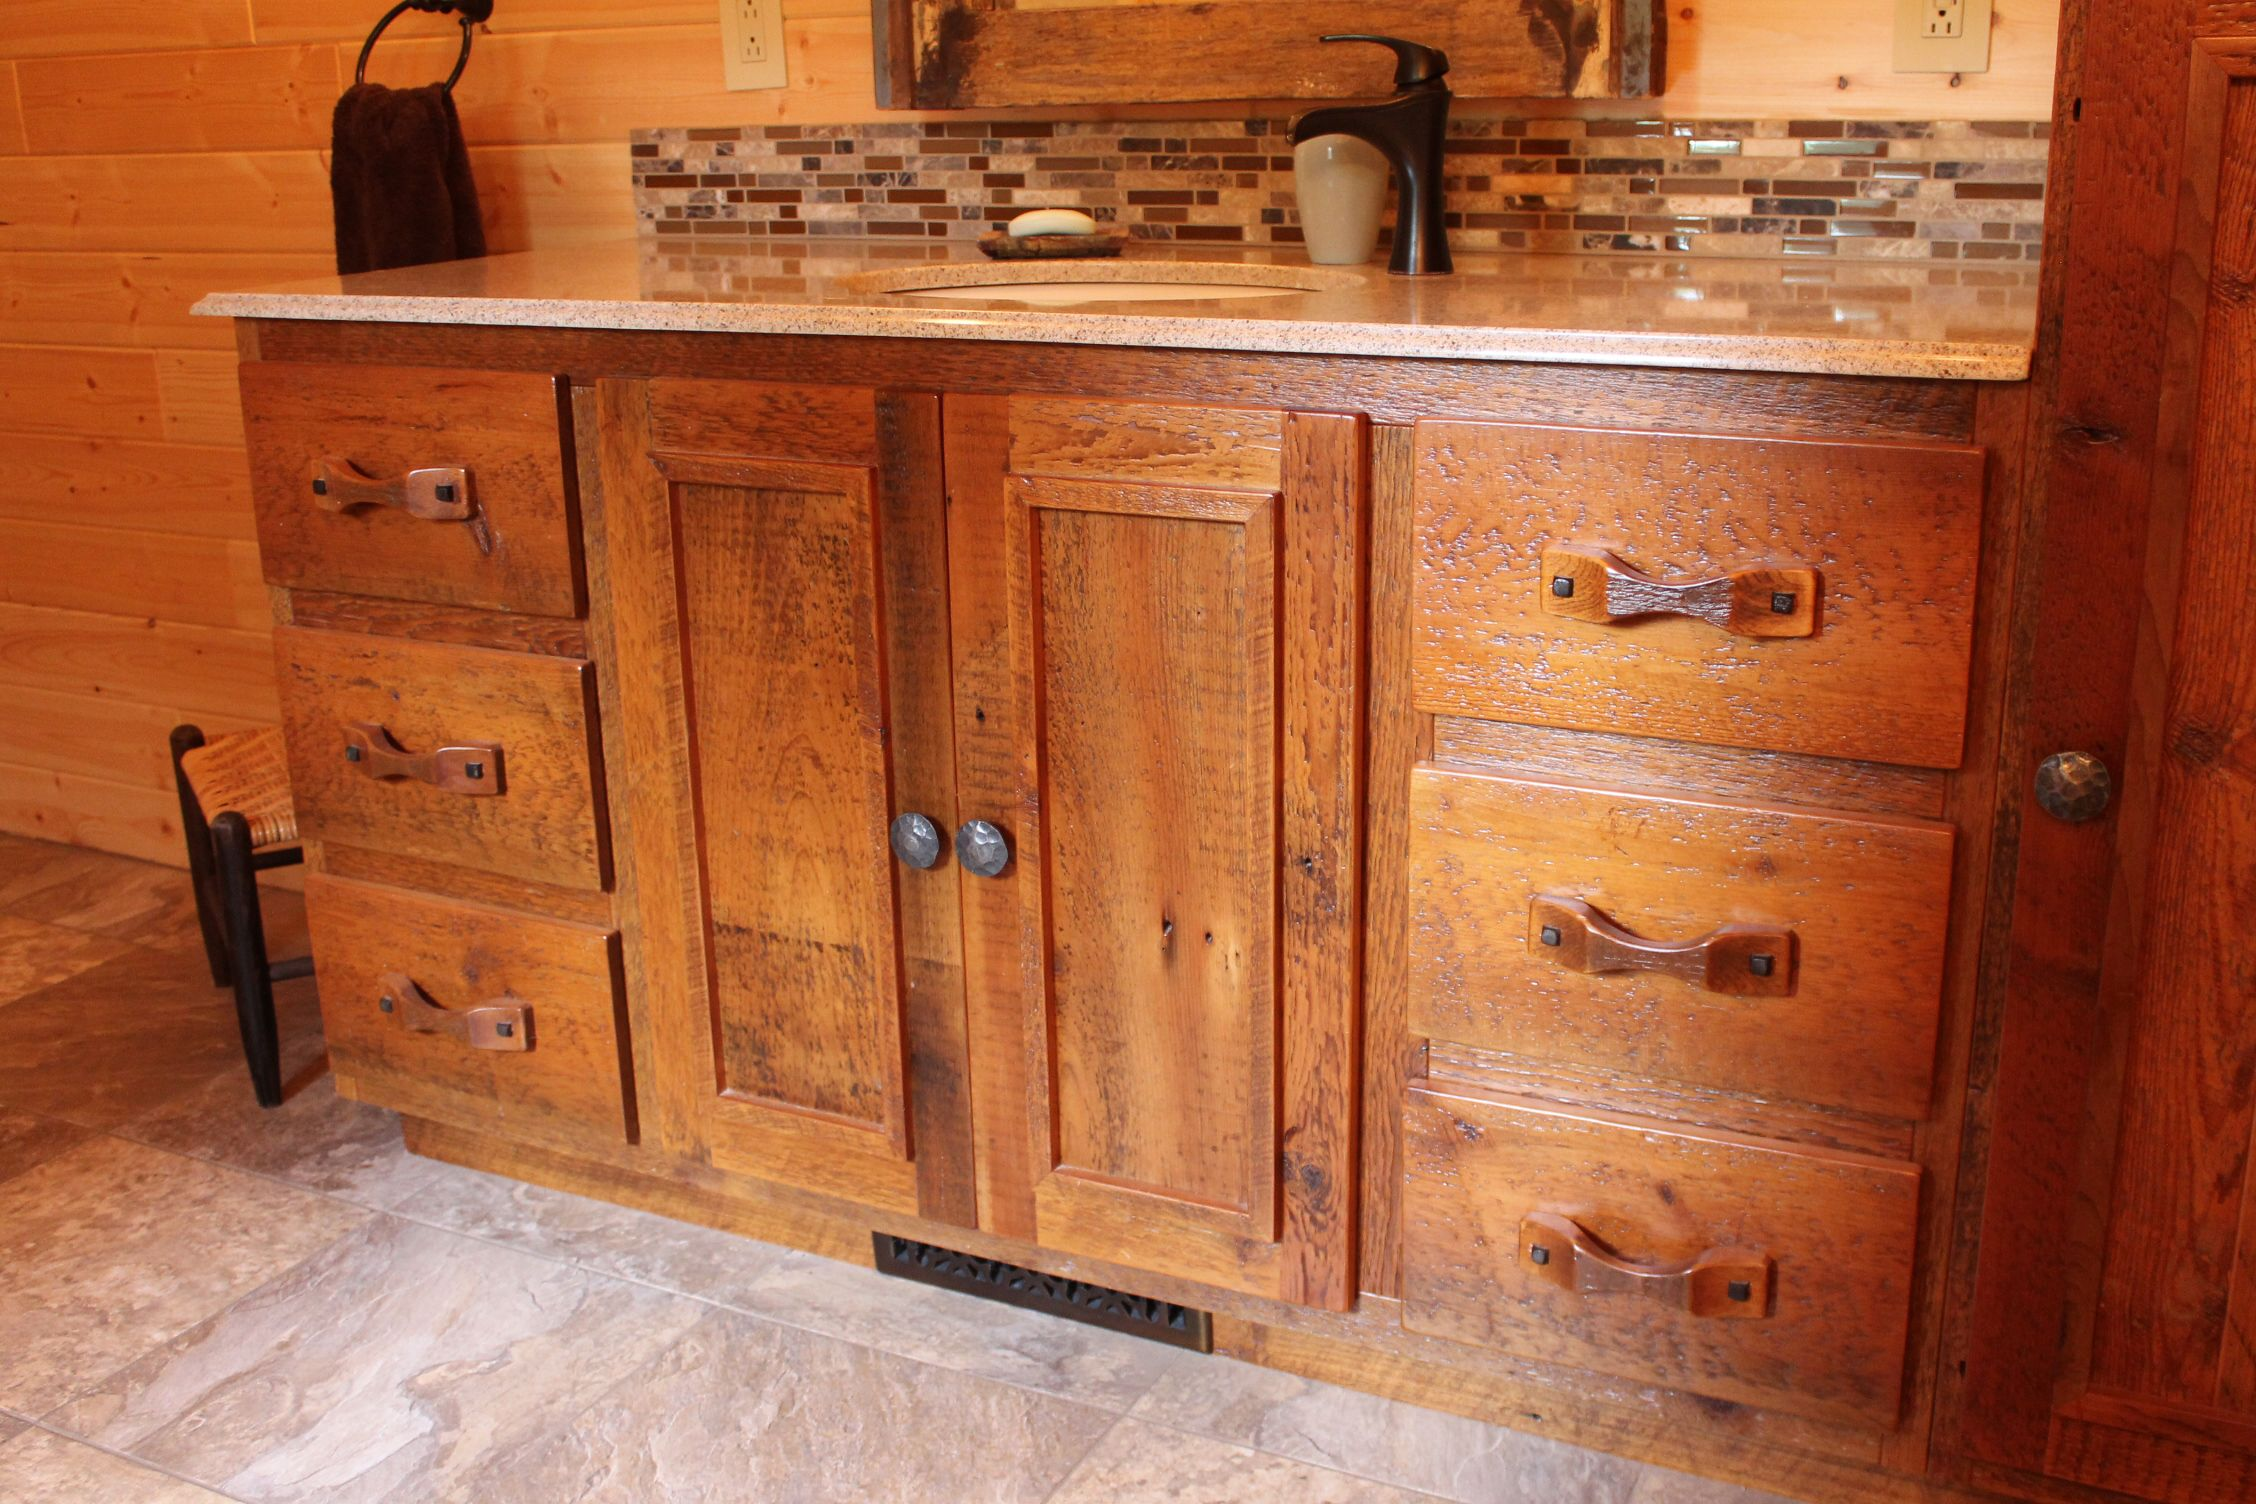 This Bathroom Vanity Is Made From 100 Year Old Reclaimed Barnwood From The  Midwest. Everything